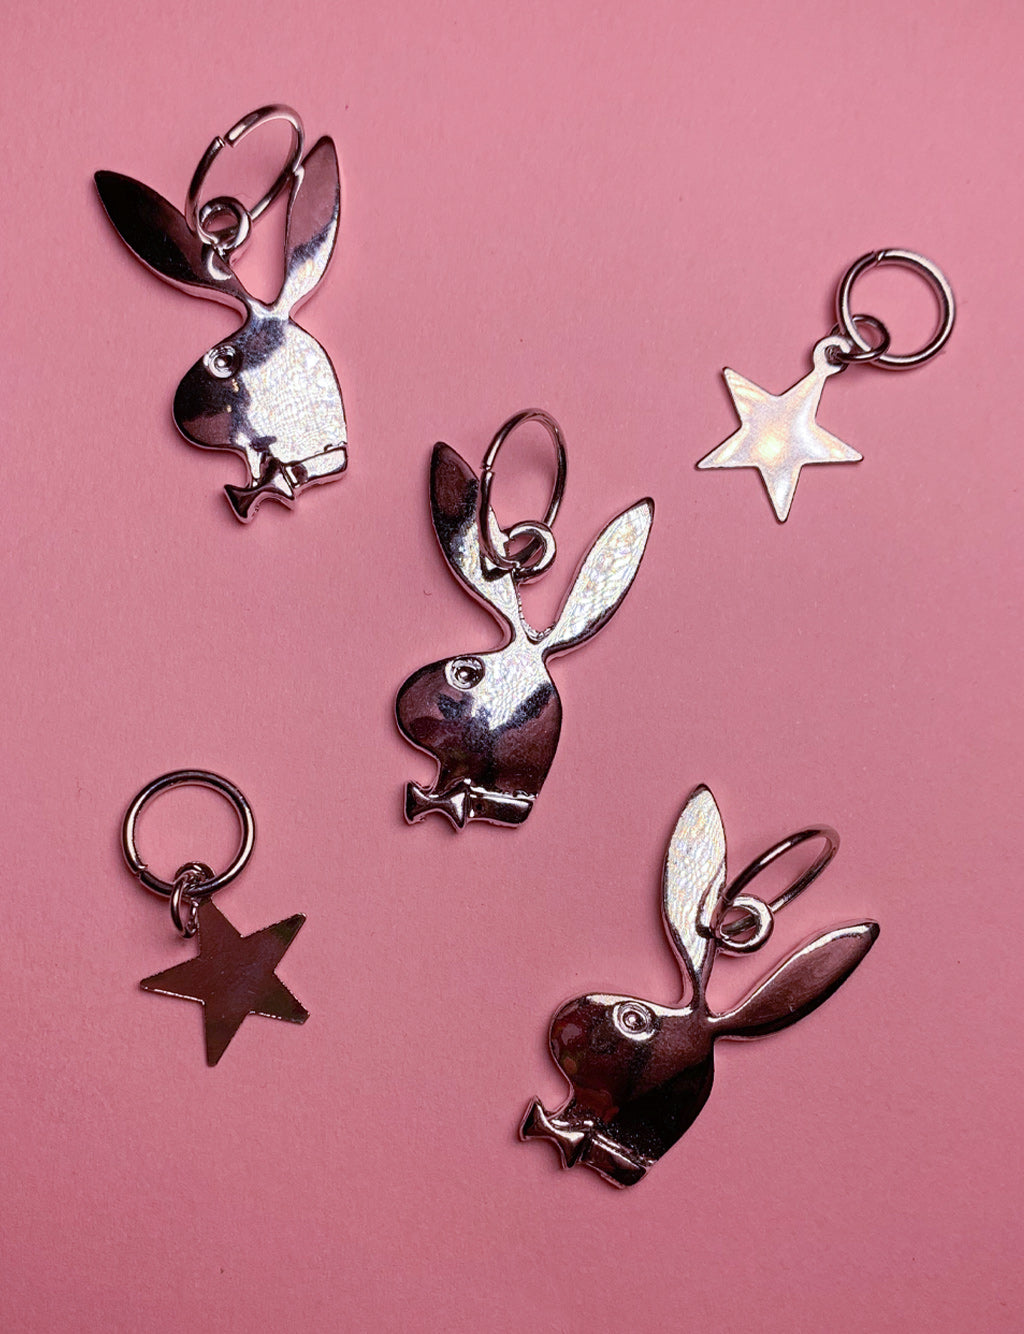 HAIR RINGS - BUNNYS & STARS